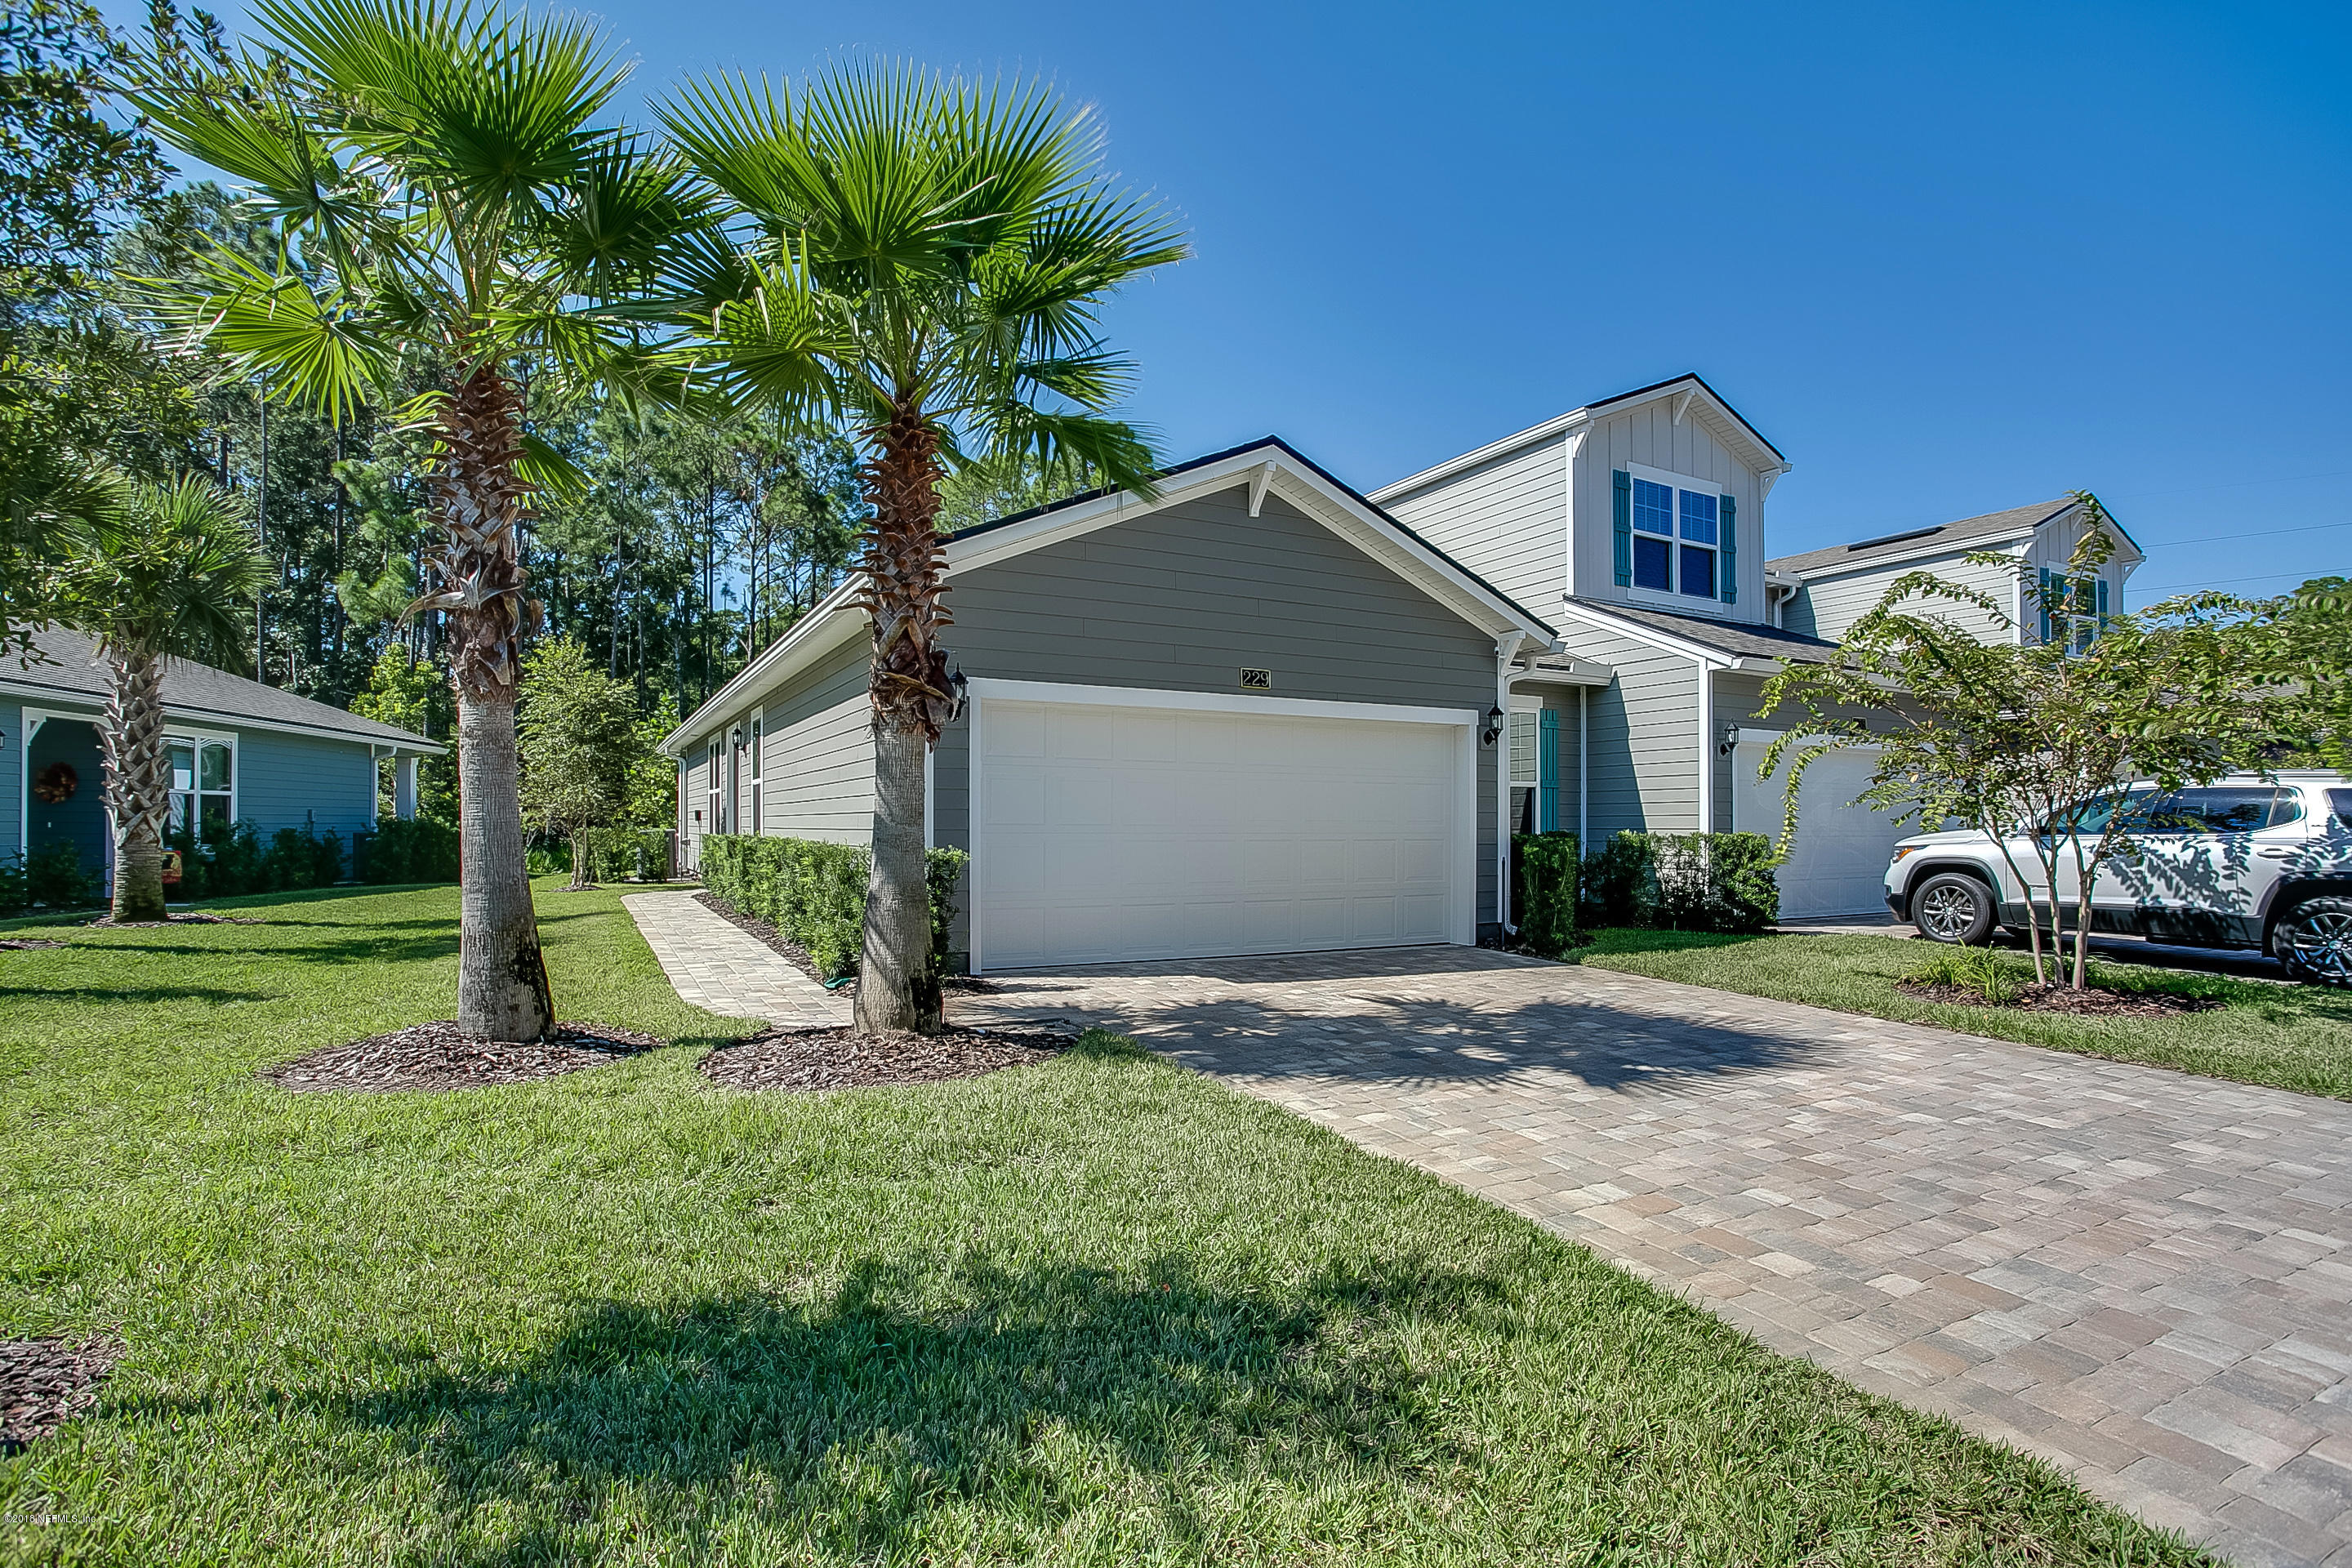 229 PINDO PALM, PONTE VEDRA, FLORIDA 32081, 3 Bedrooms Bedrooms, ,2 BathroomsBathrooms,Residential - townhome,For sale,PINDO PALM,962477